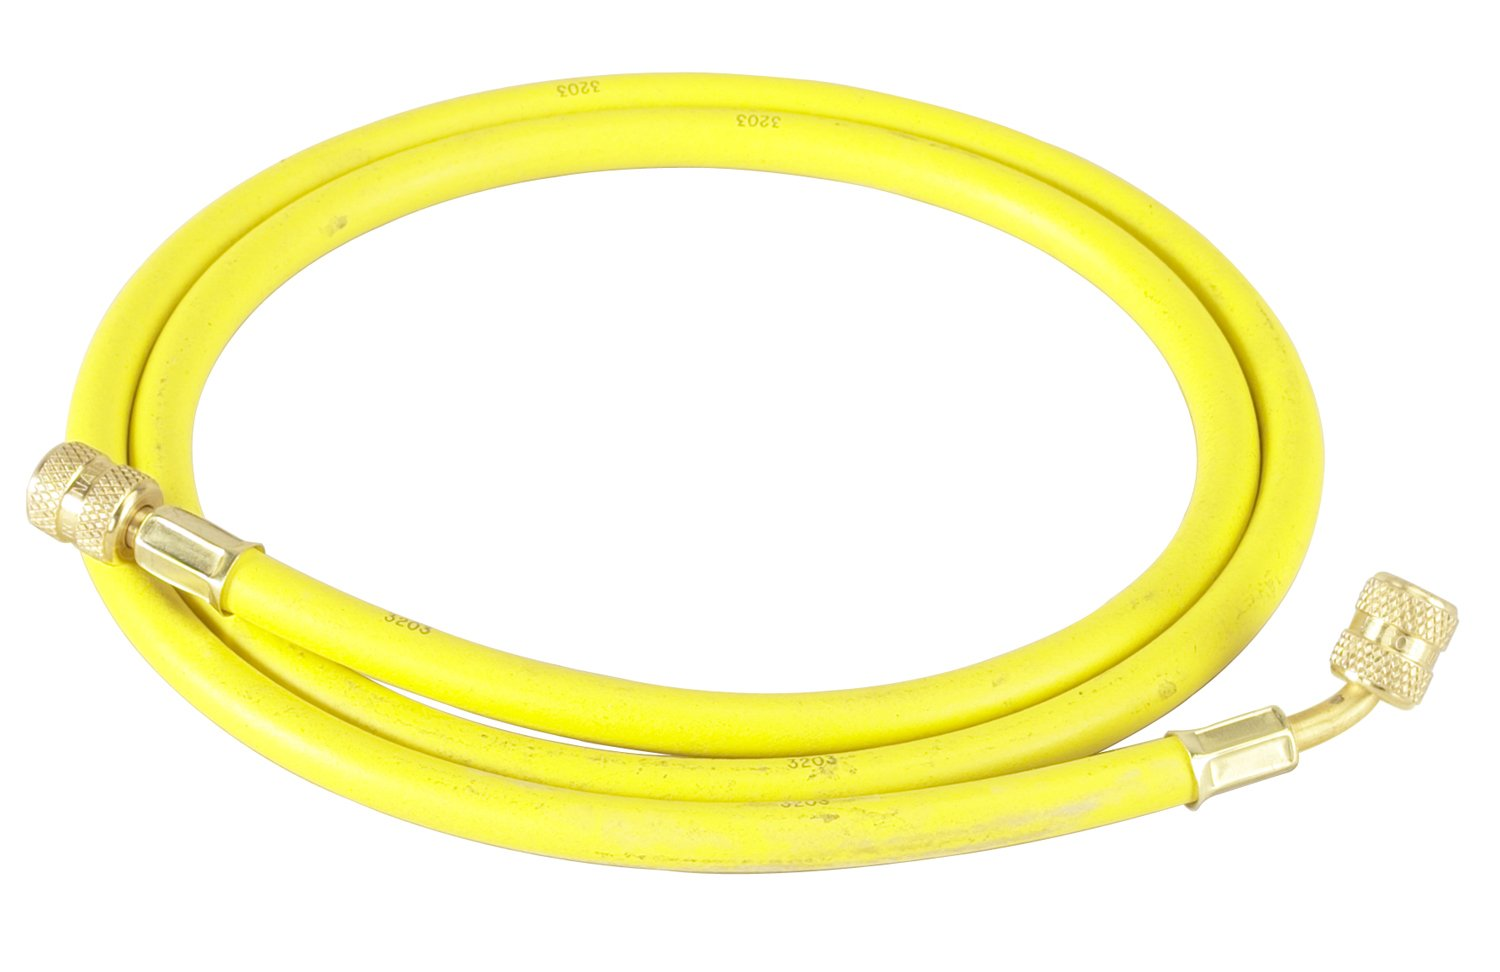 Robinair (31060 1/4'' Standard Hose with Standard Fittings - 60'', Yellow